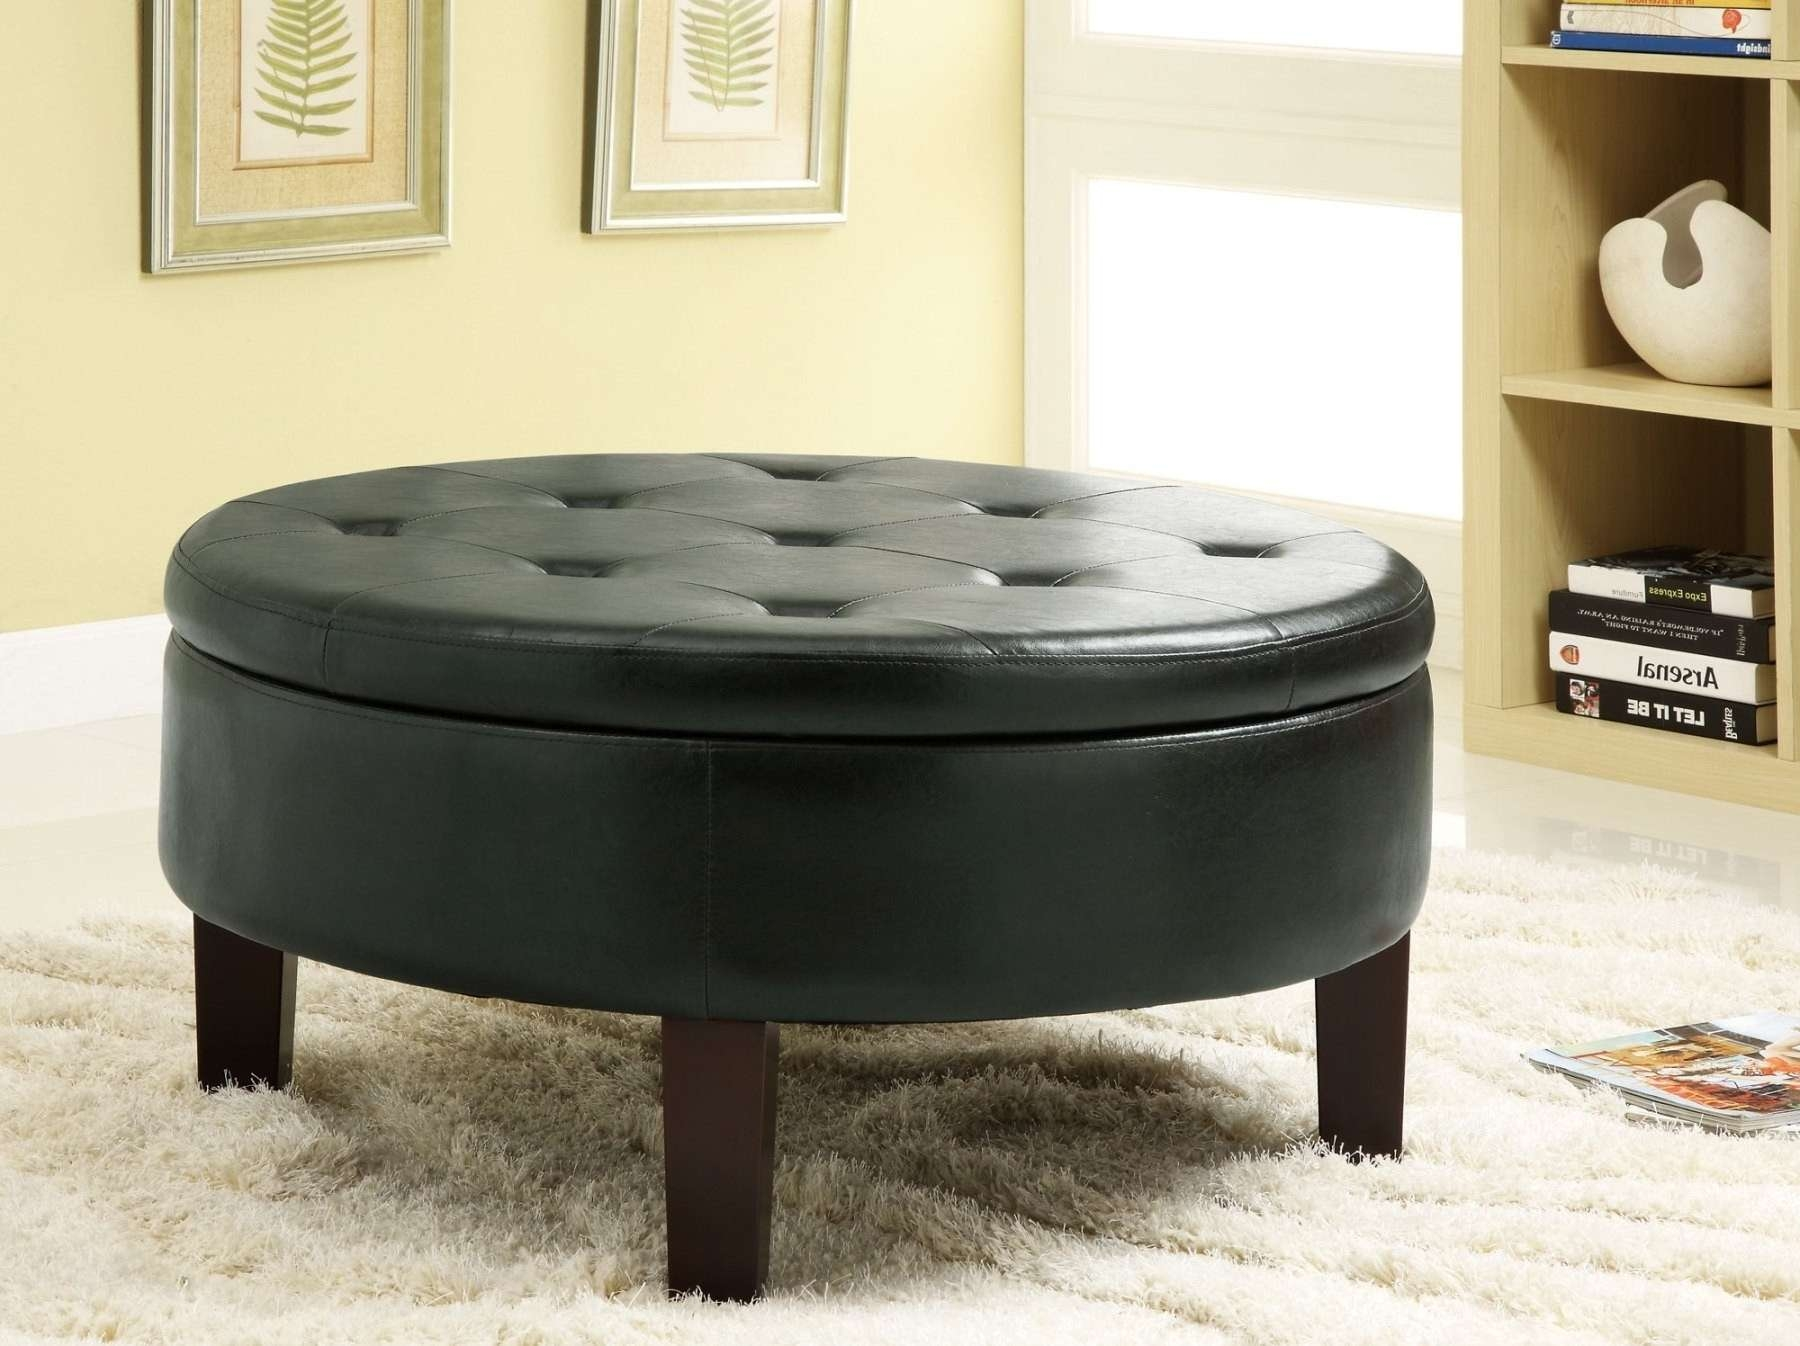 Widely Used Circular Coffee Tables With Storage Regarding Round Coffee Table With Storage Coffee Tables With Round Coffee (View 20 of 20)